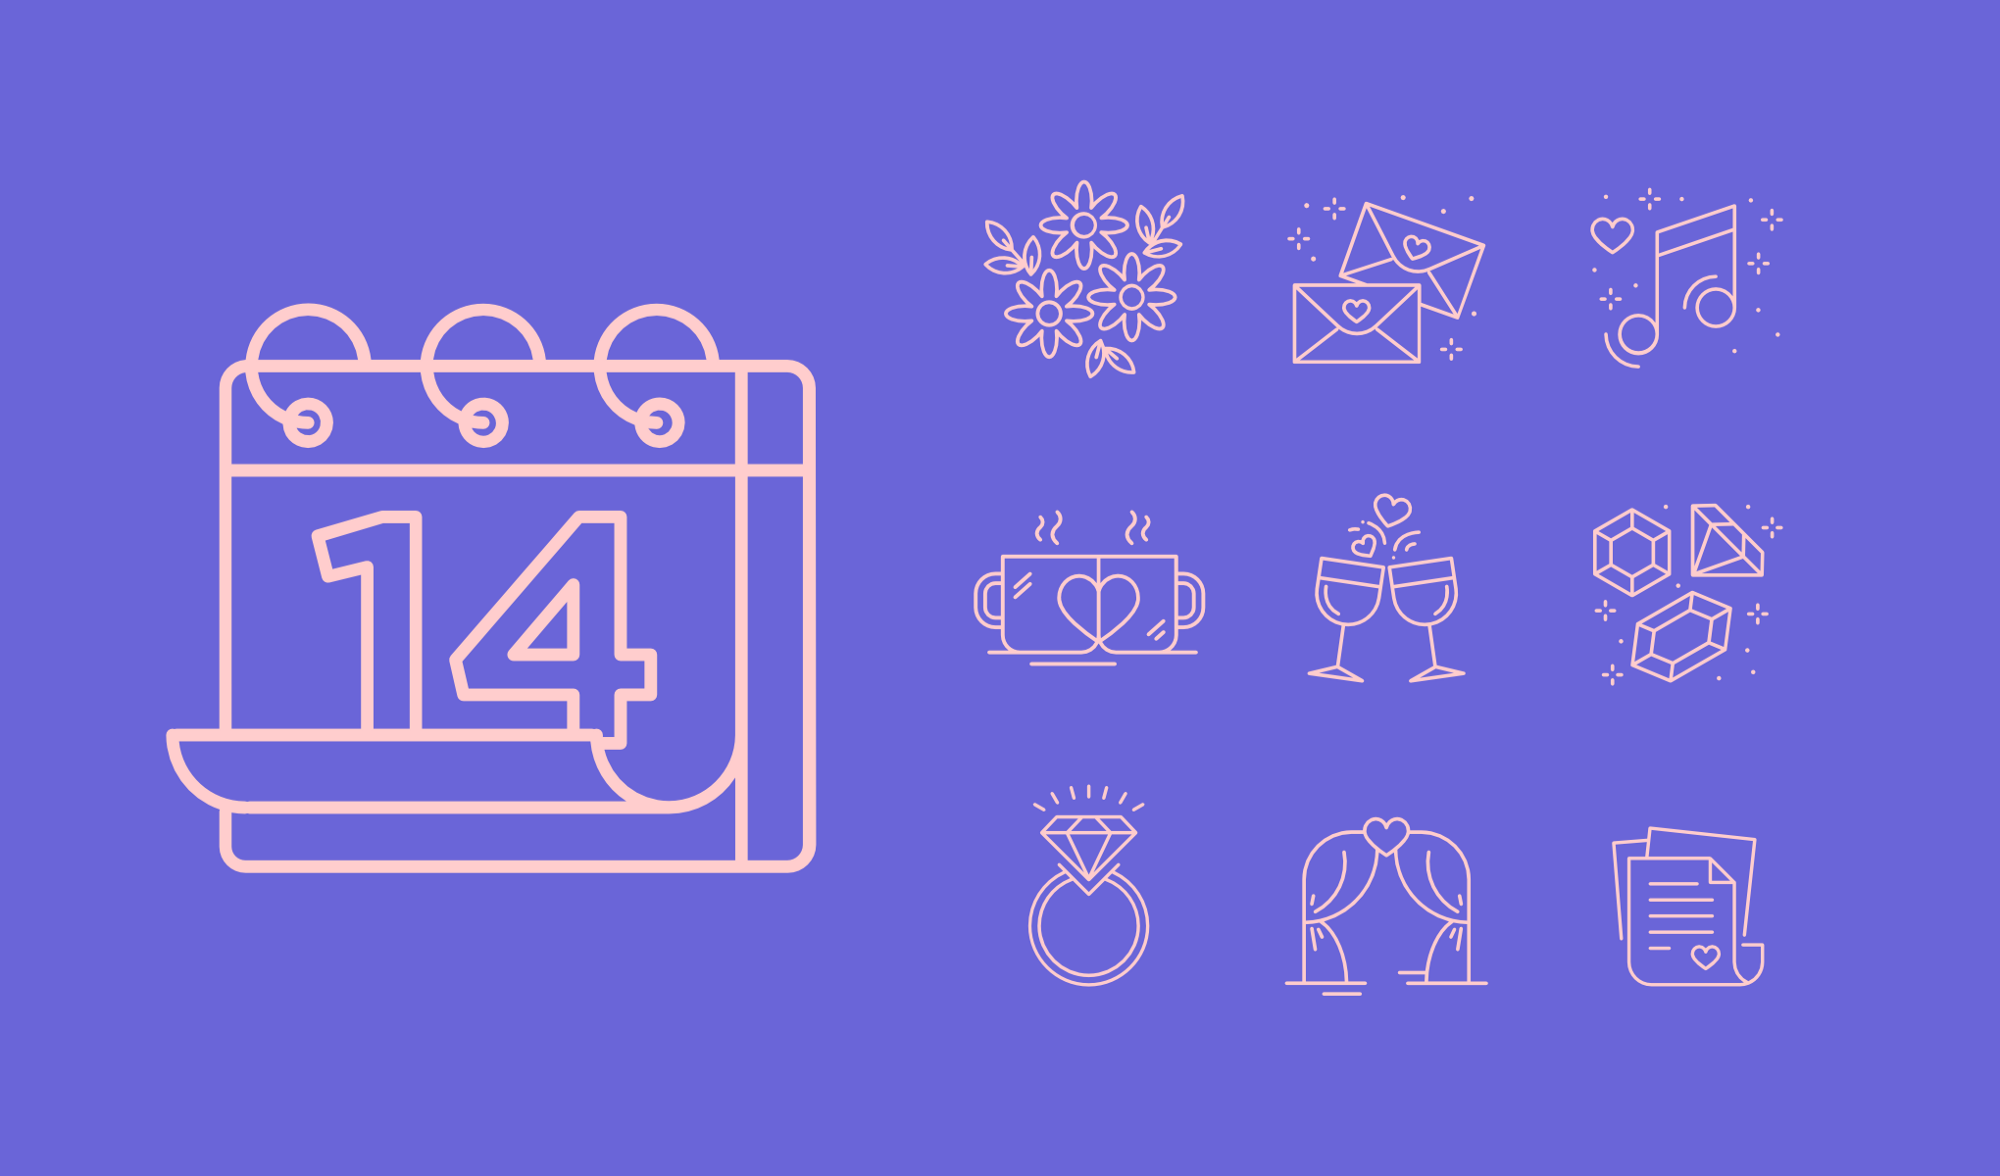 14 Free And Premium Icon Sets For Valentine S Day The Iconfinder Blog